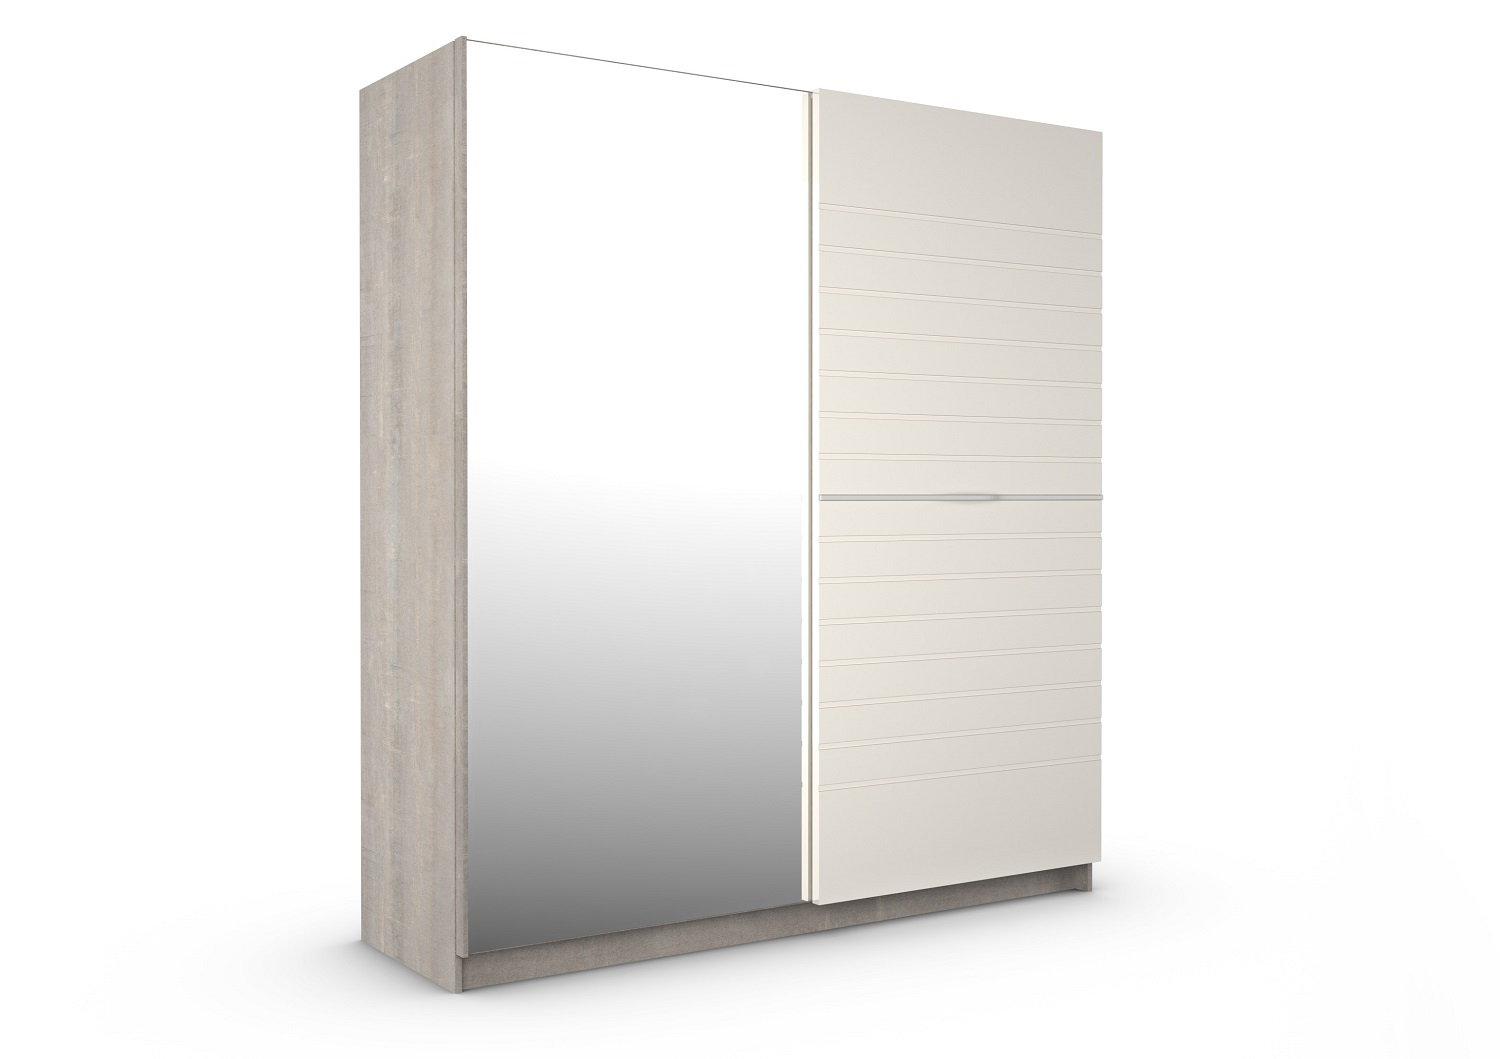 Bilrich Bedroom Furniture - Marina Wardrobe